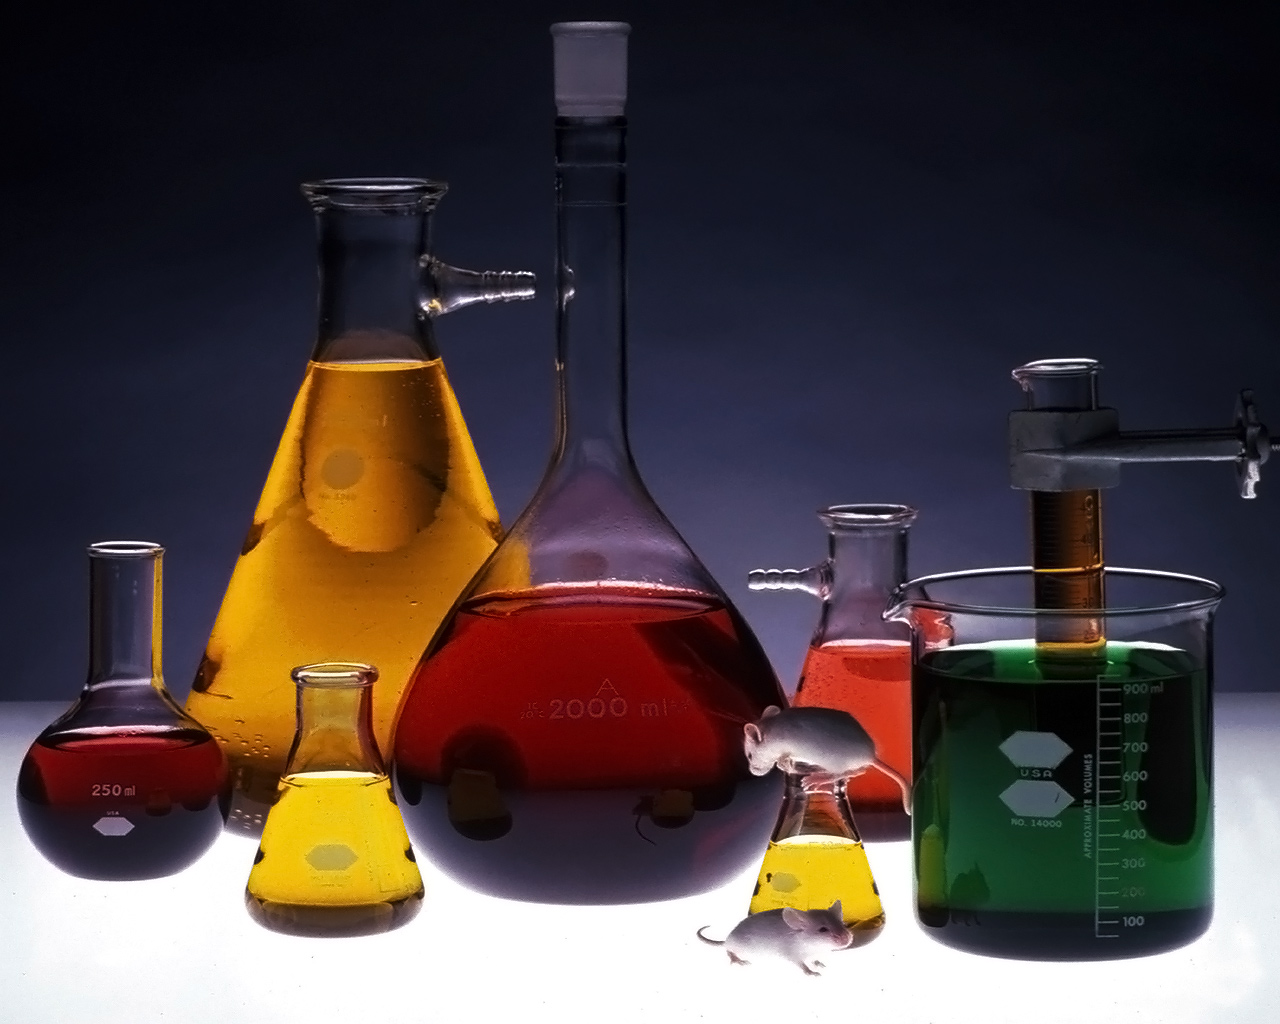 Chemistry Wallpaper Thread! - Chemistry - Science Forums